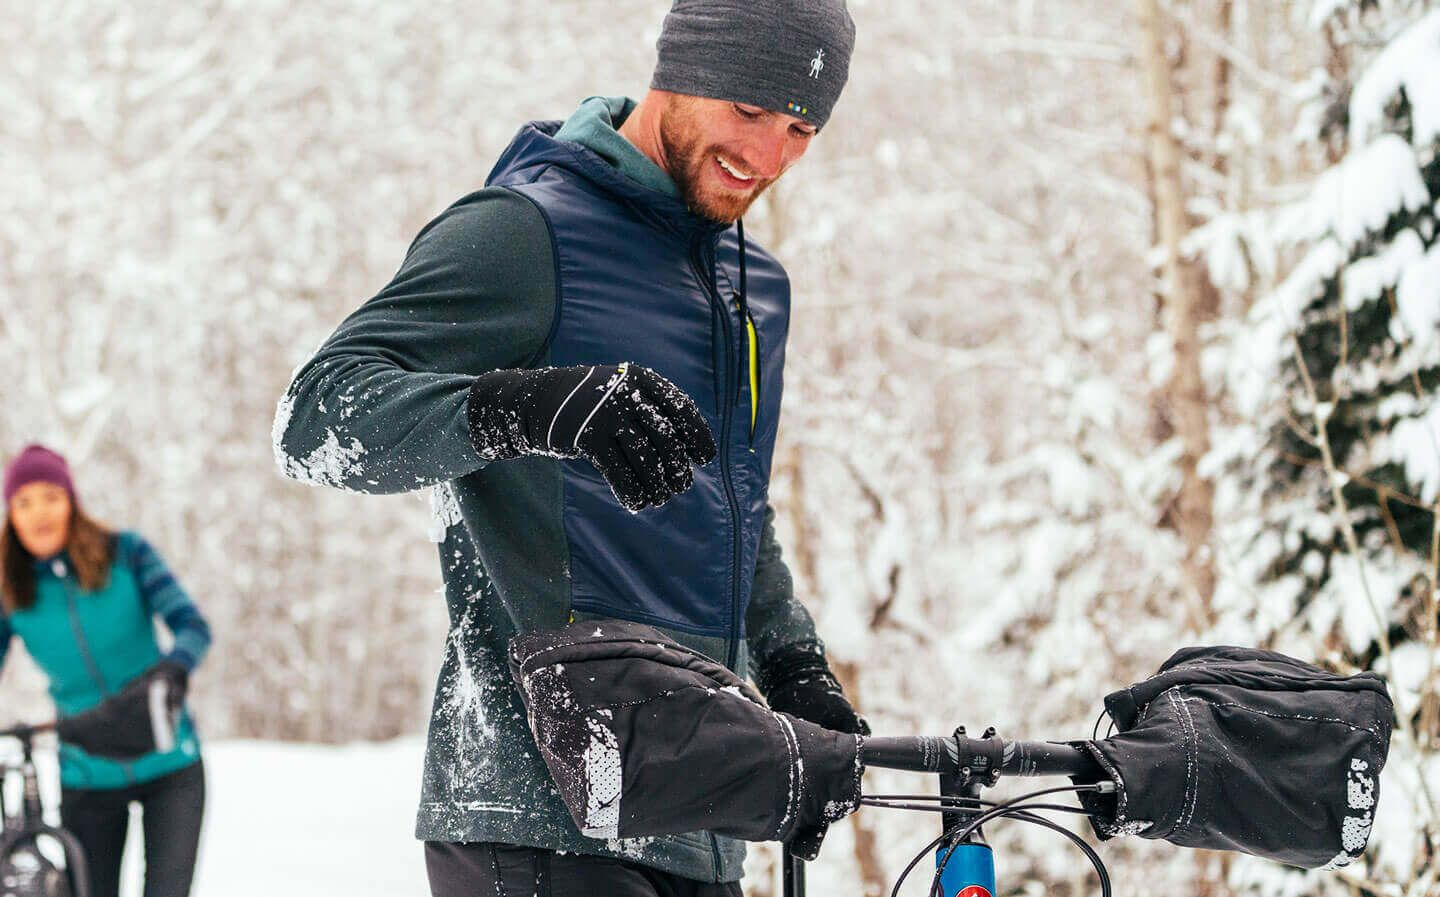 Man and woman walking with fat bikes in snow